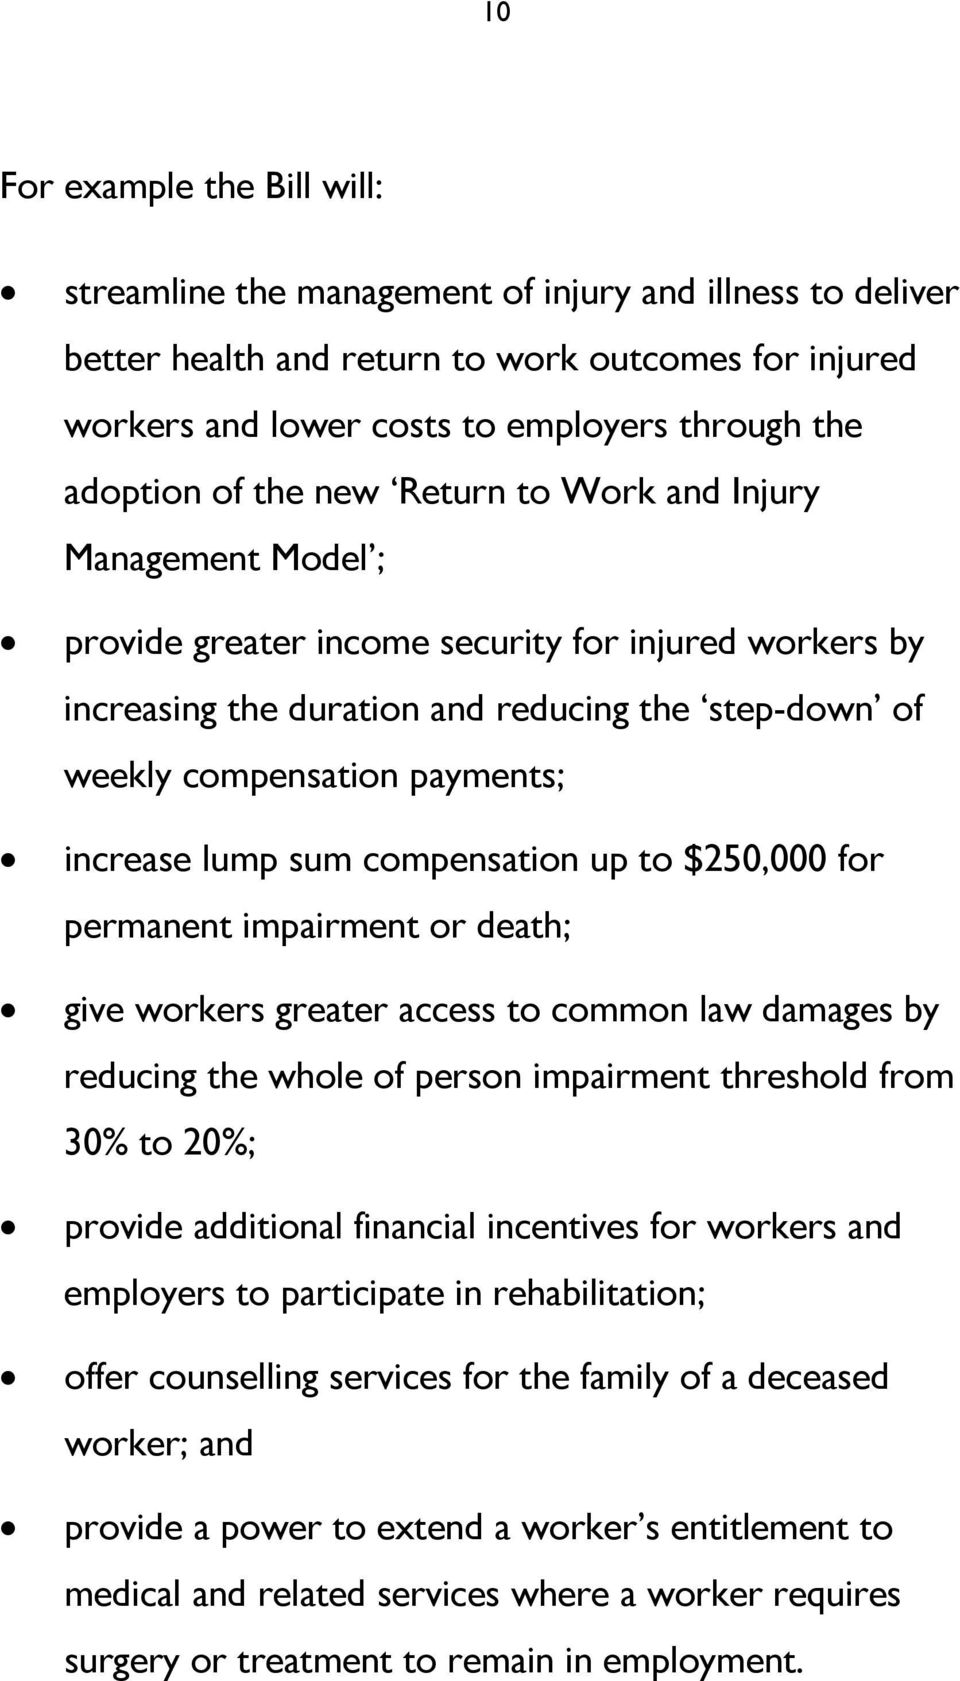 payments; increase lump sum compensation up to $250,000 for permanent impairment or death; give workers greater access to common law damages by reducing the whole of person impairment threshold from